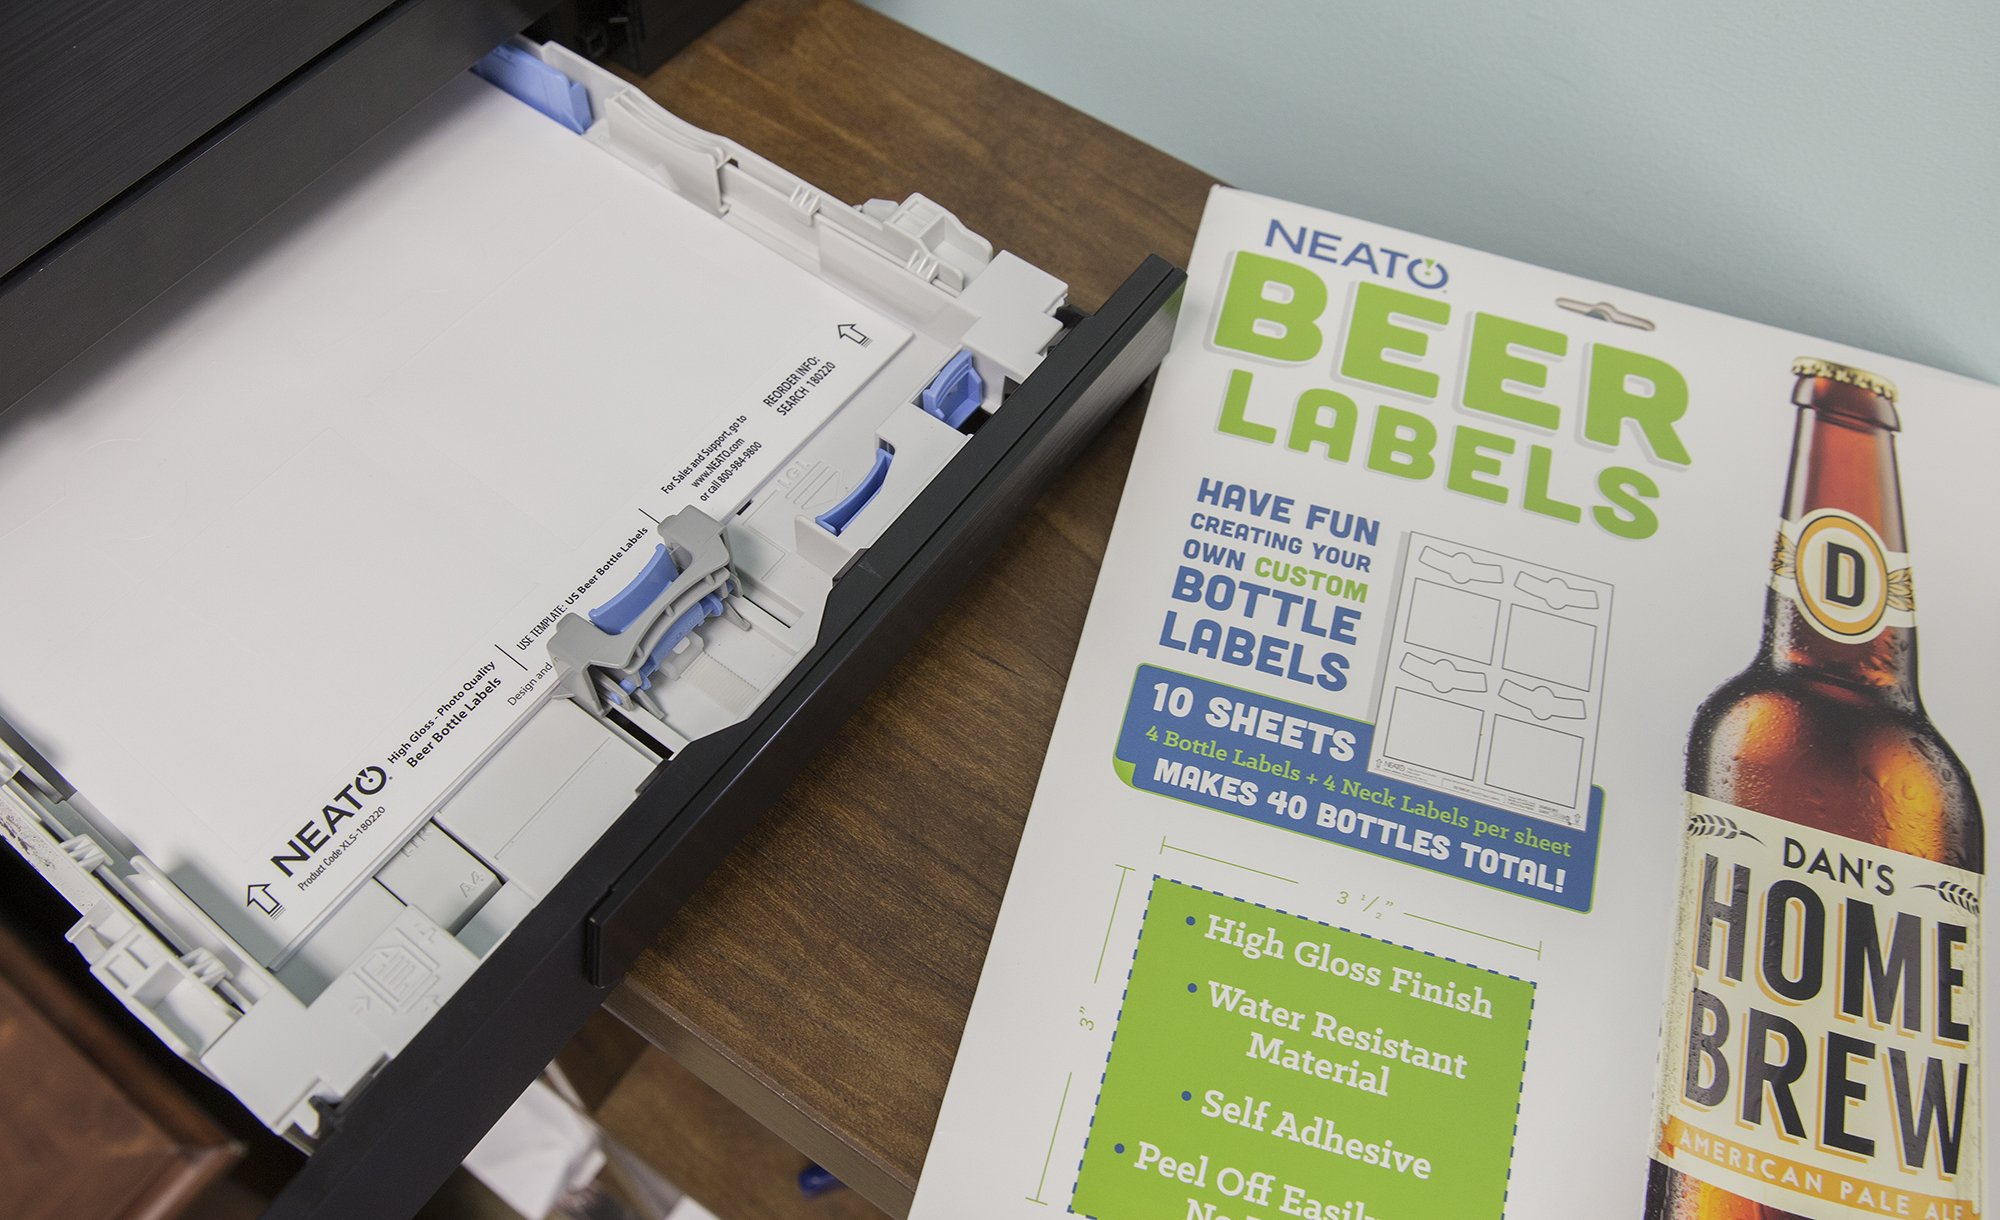 Neato Blank Beer Bottle Labels - 40 pack - Water Resistant, Vinyl, For InkJet Printers by Neato (Image #4)